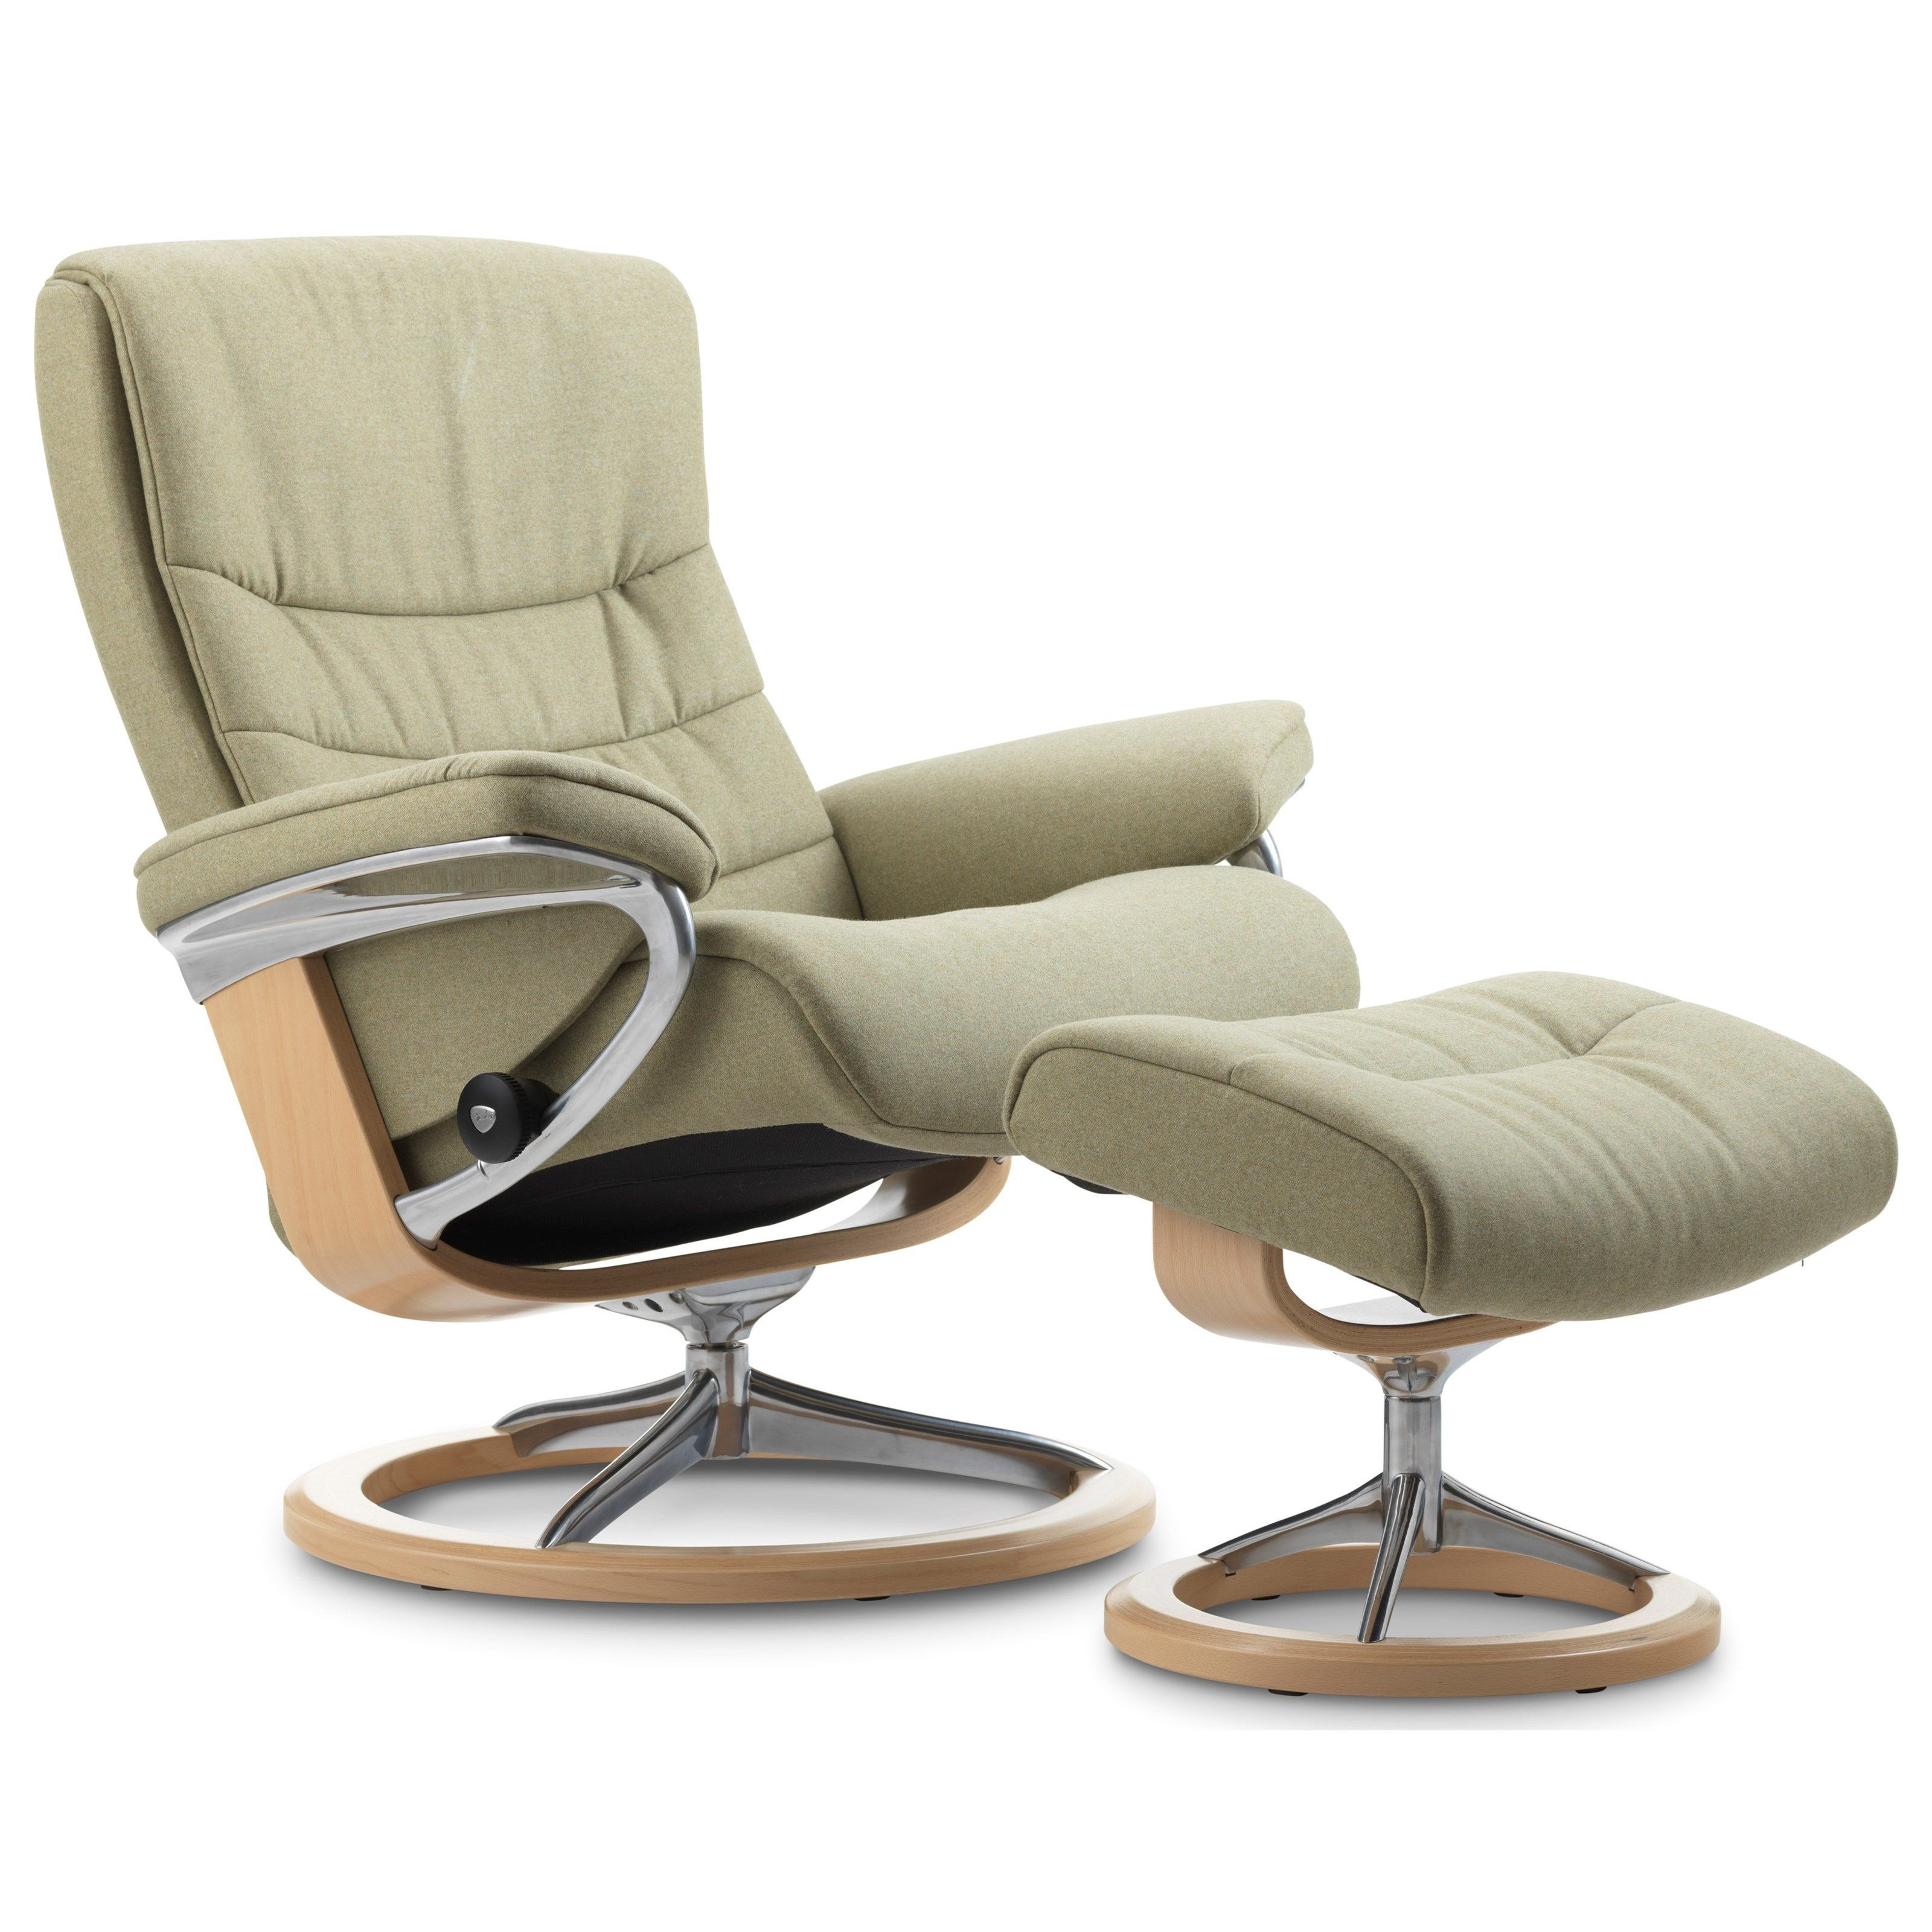 Stressless Ekornes Sessel Blue Leather Recliner Chair Stühle Leather Recliner Recliner